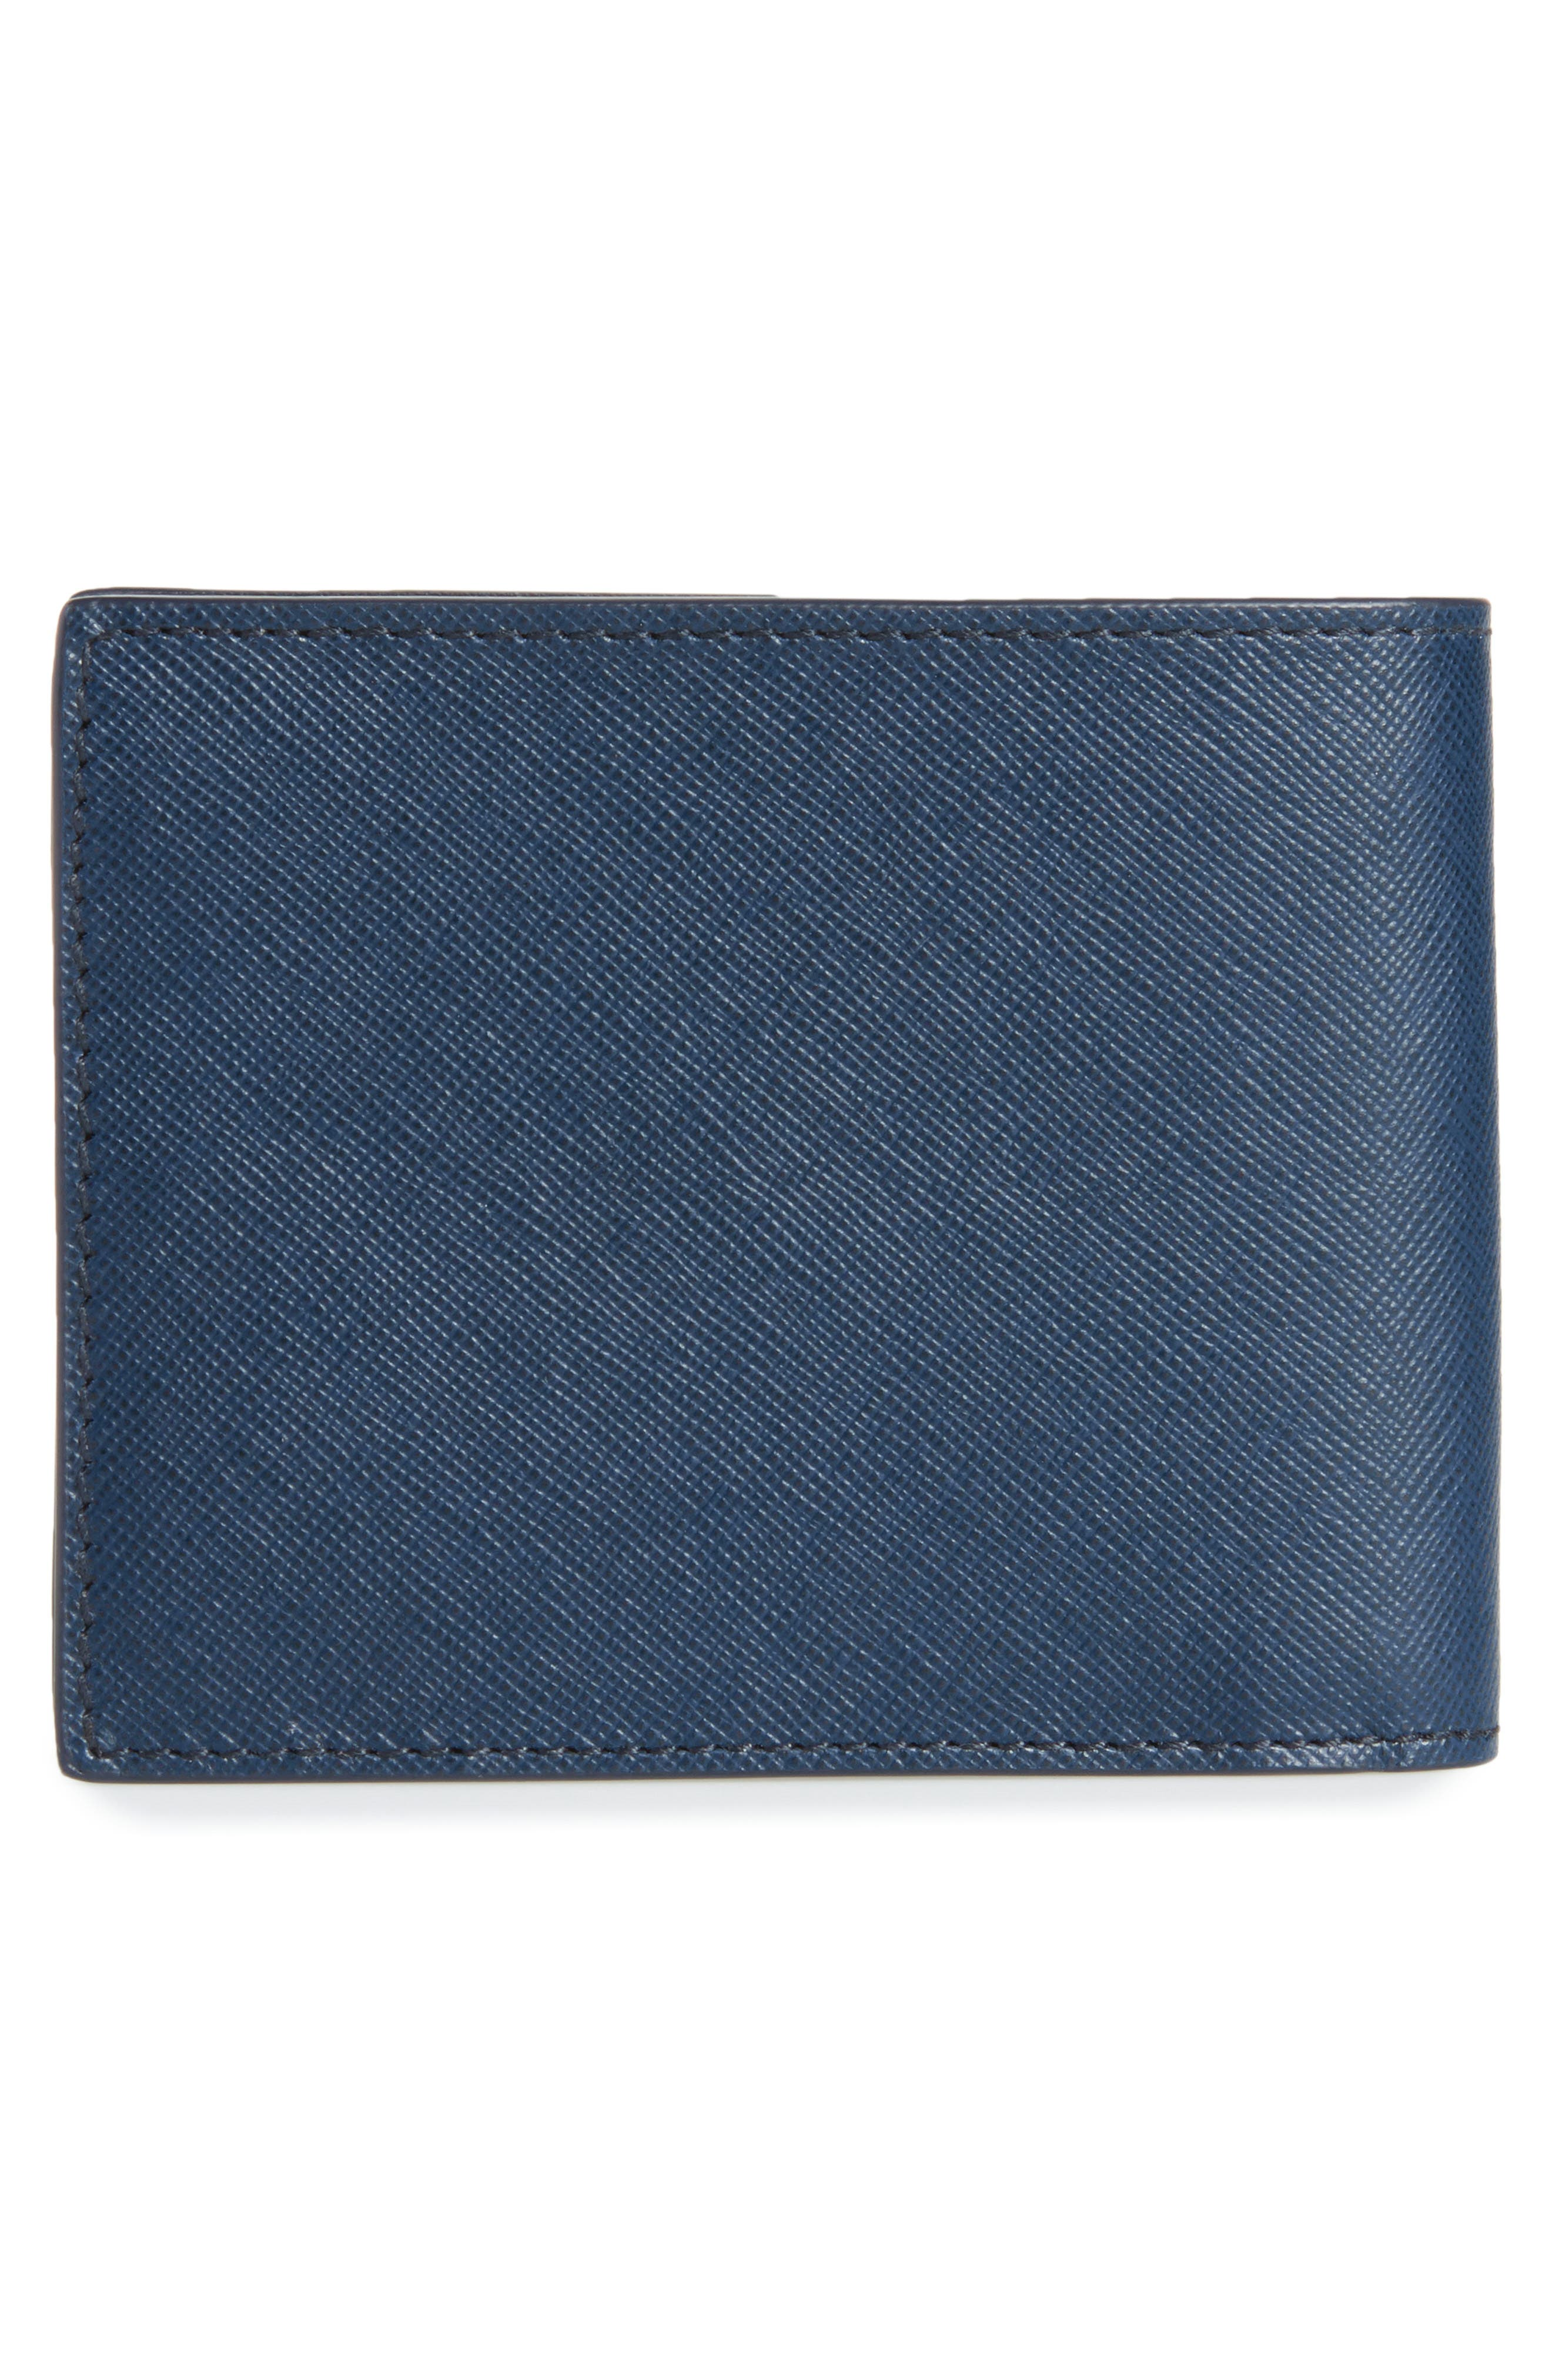 Sartorial Leather Bifold Wallet,                             Alternate thumbnail 6, color,